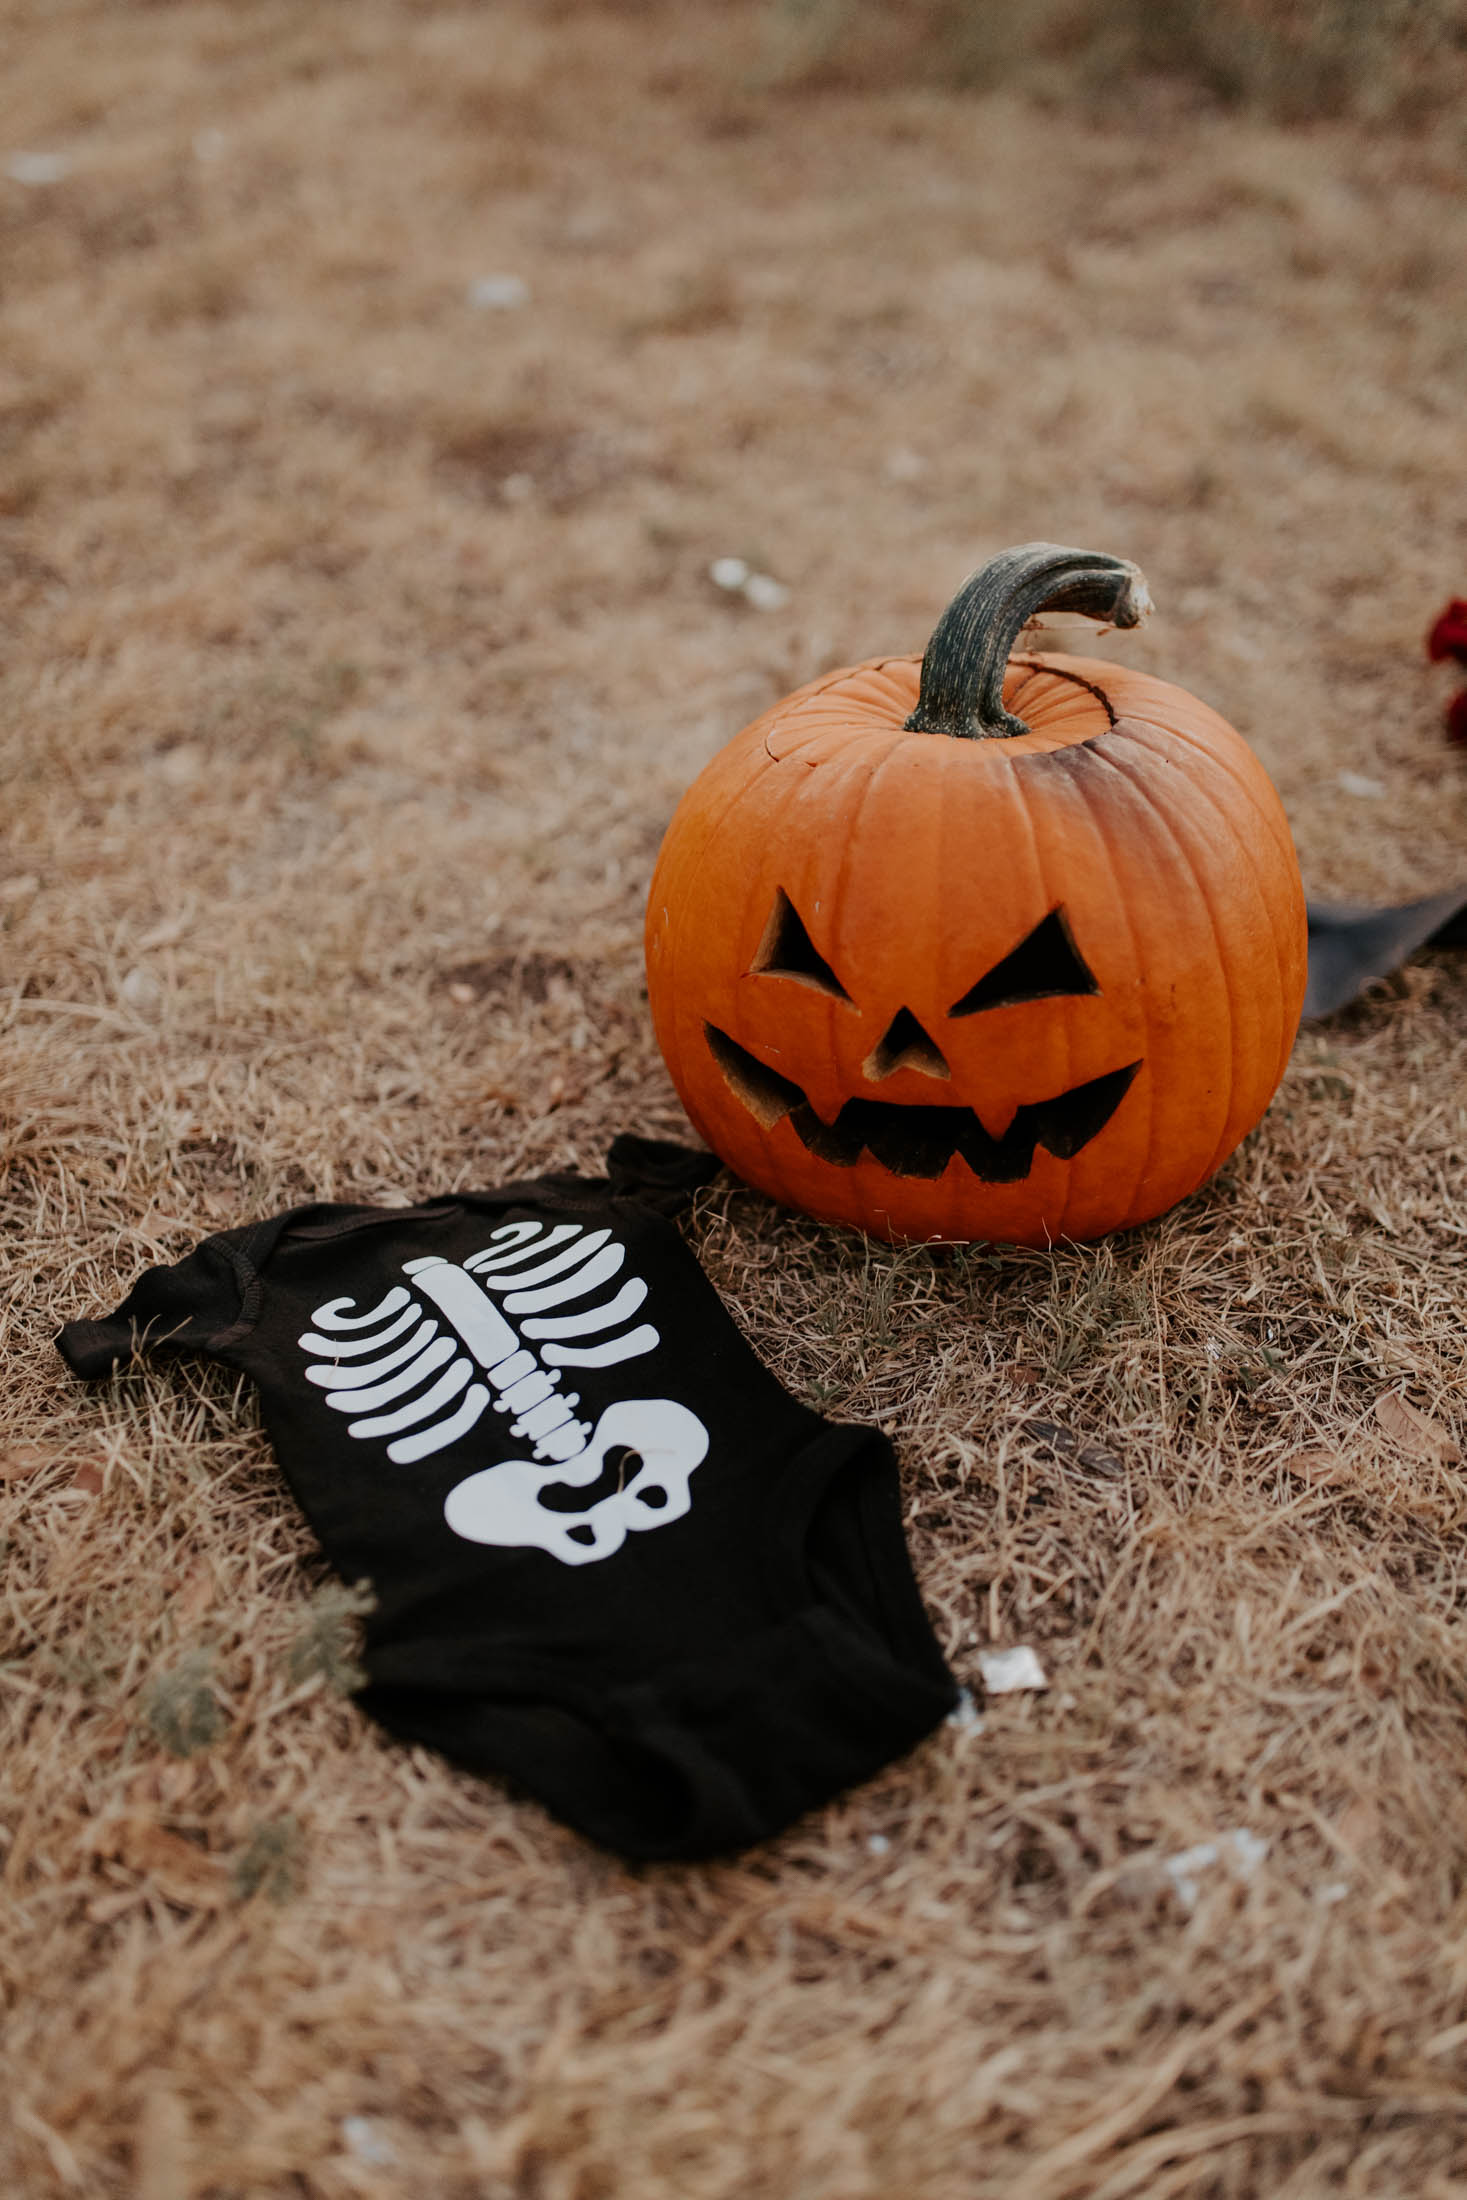 halloween themed baby announcement in Fort Worth with jack-o-lantern and skull makeup